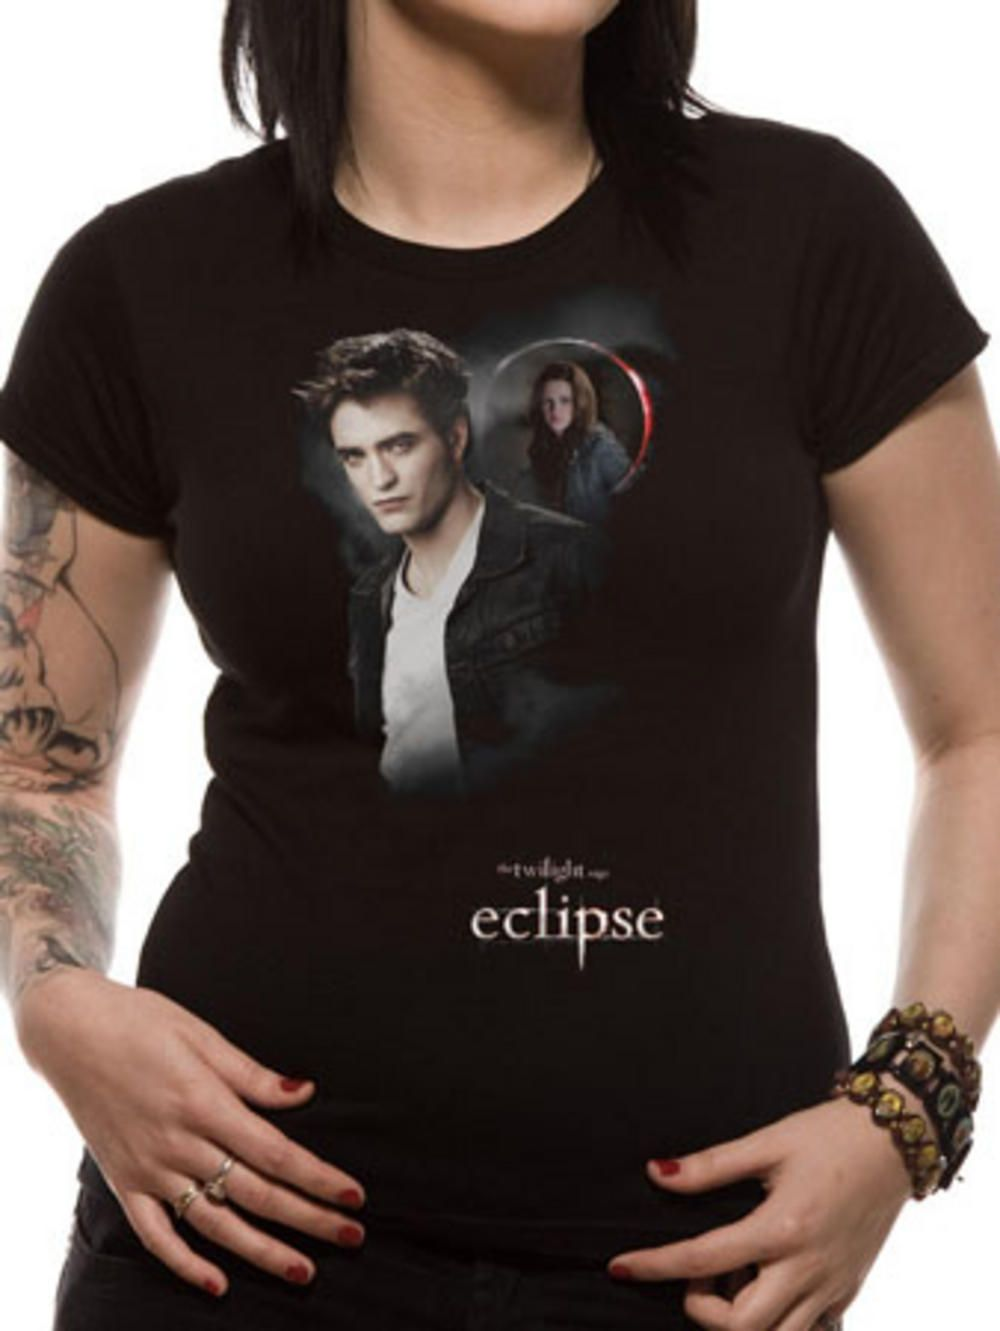 b26dde95c8d Get the Best Twilight T Shirts like the Edward Cullen t-shirt and Bella  Swan tees with printing only 250 AED only.. Email us  contact design360dubai.com